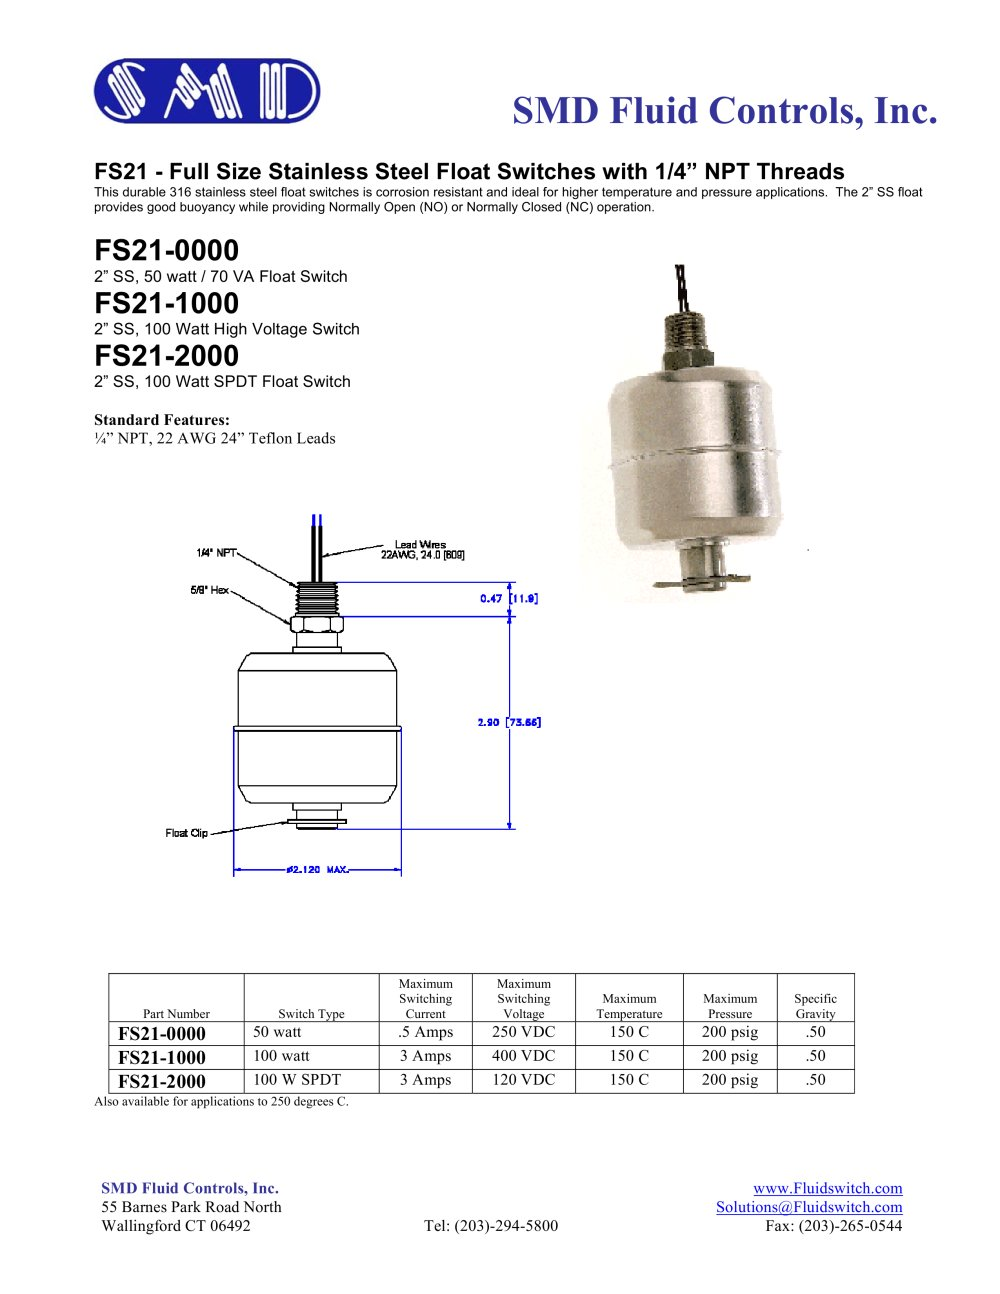 Fs22 Oil Water Float Level Switch Strain Measurement Devices Spdt Wiring Diagram 1 2 Pages